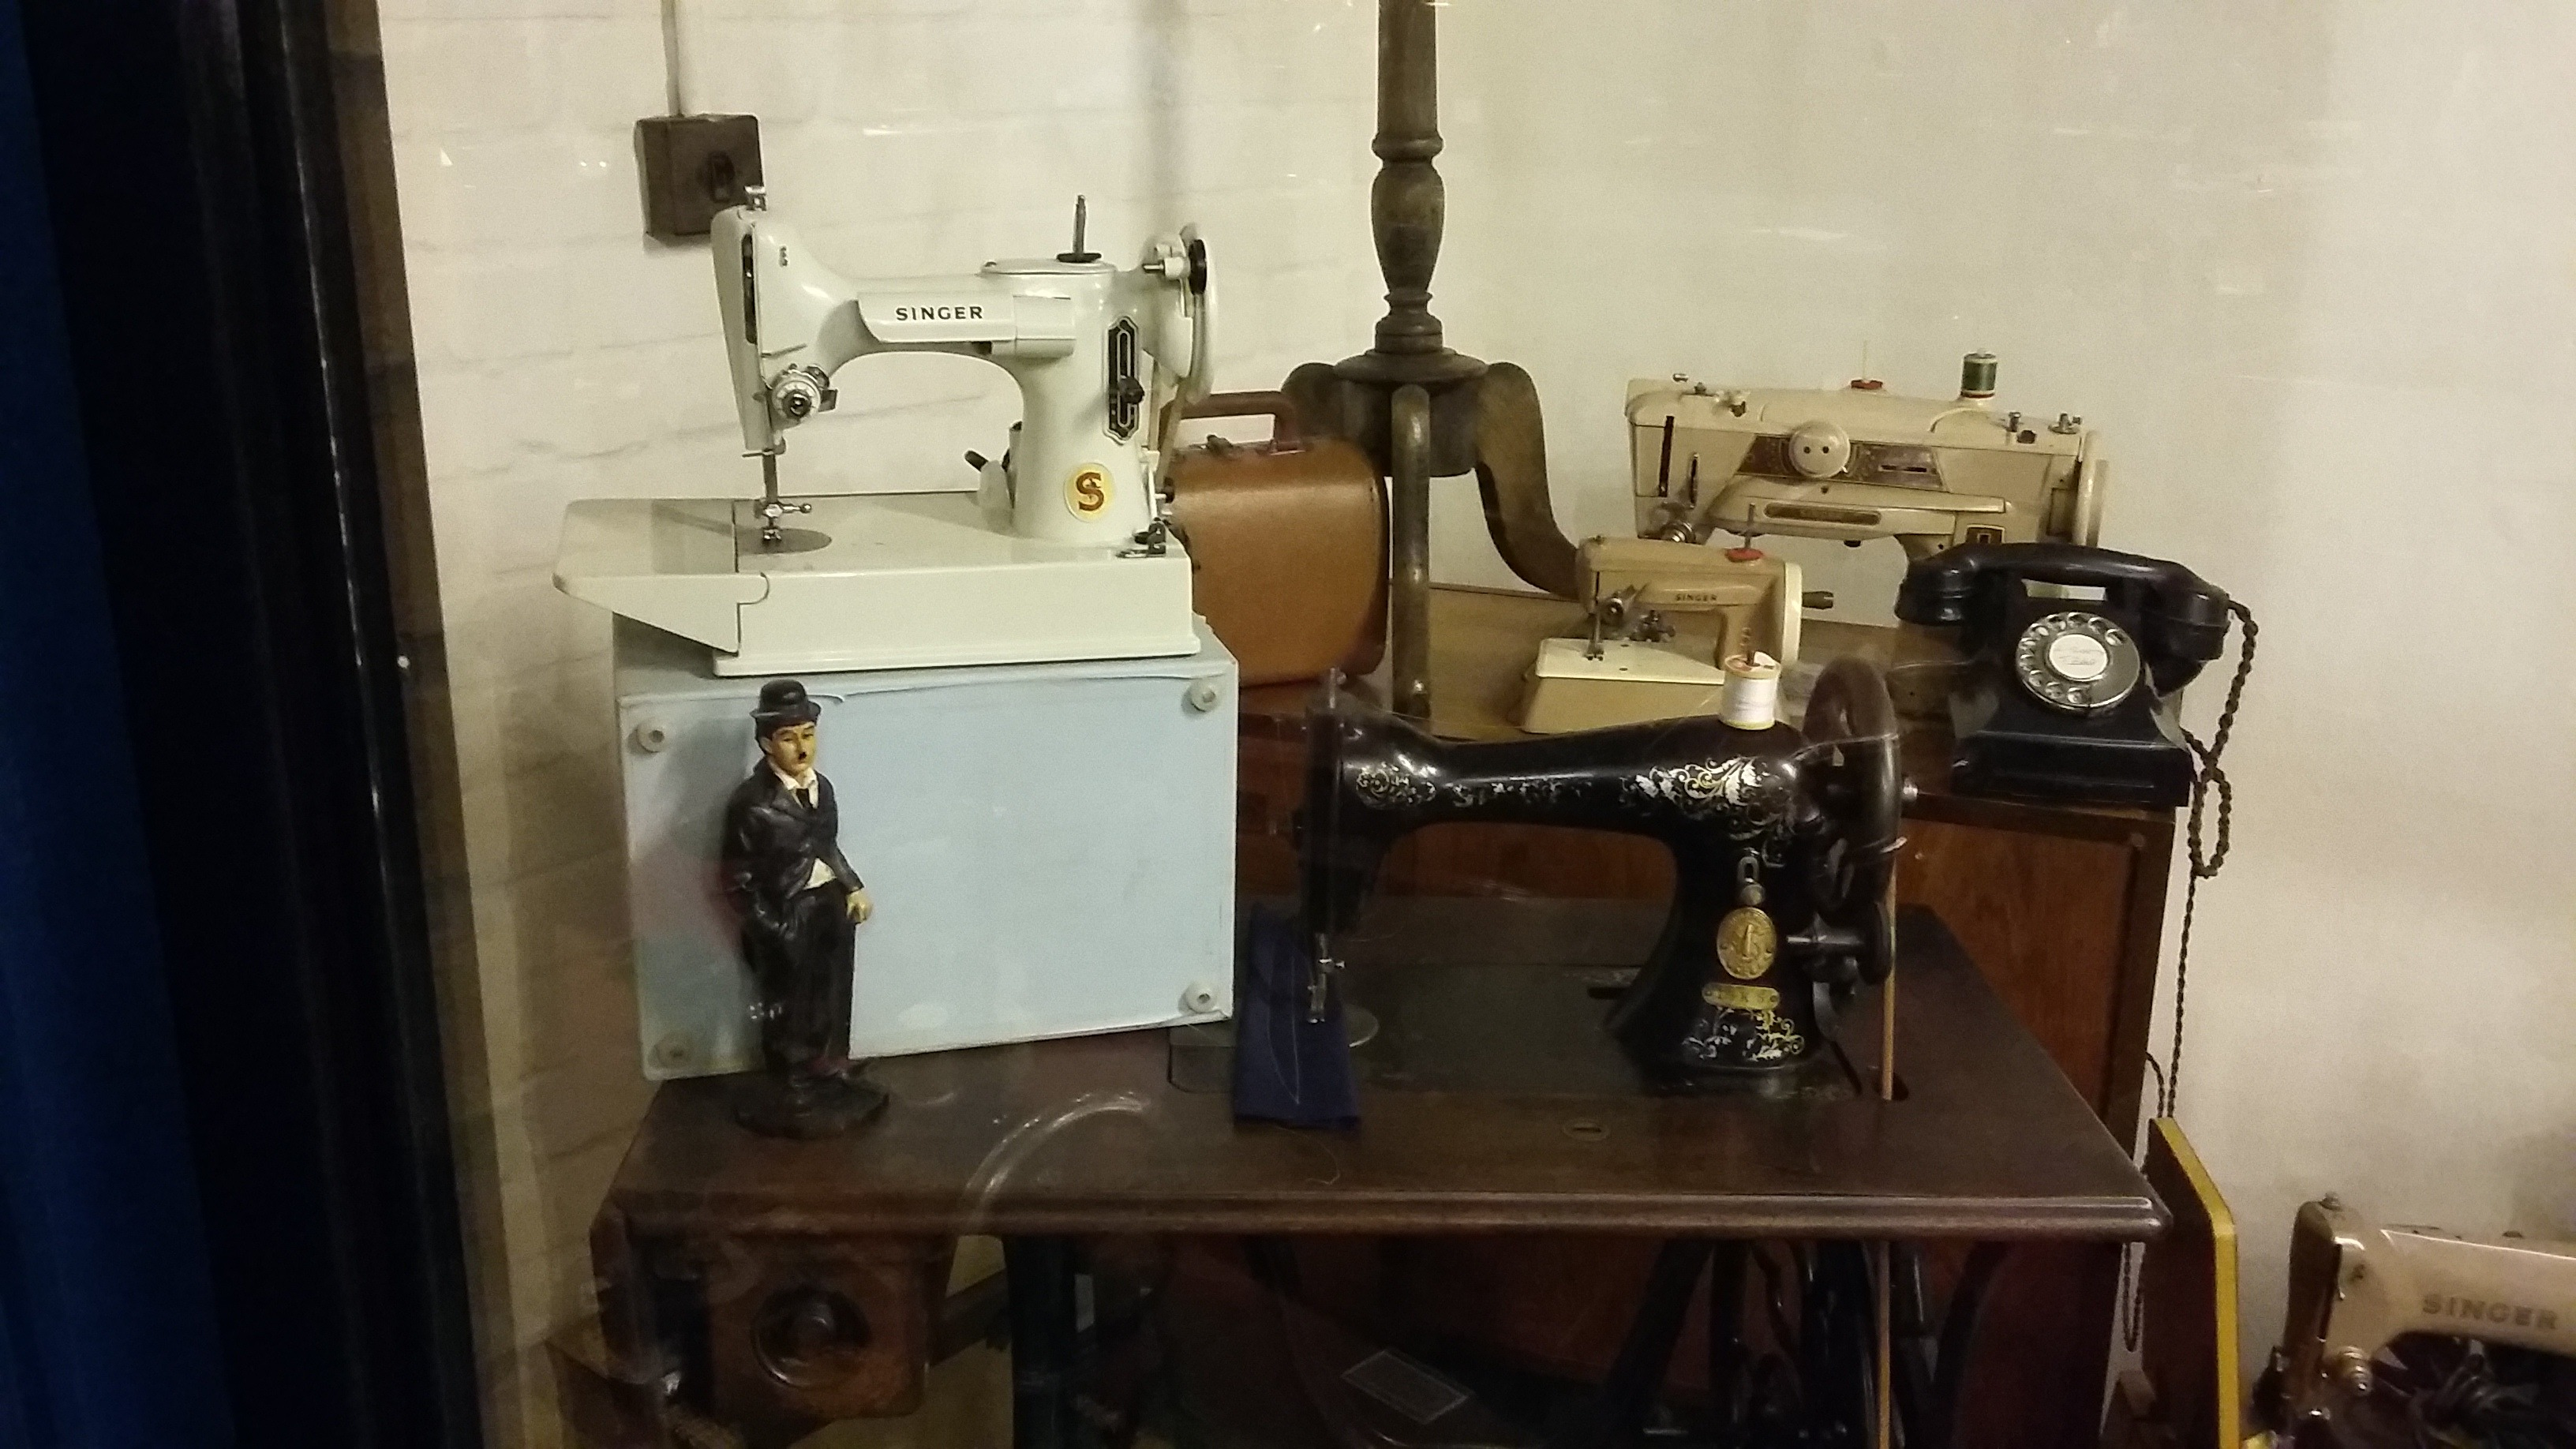 Charlie Chaplin's mother's sewing machine